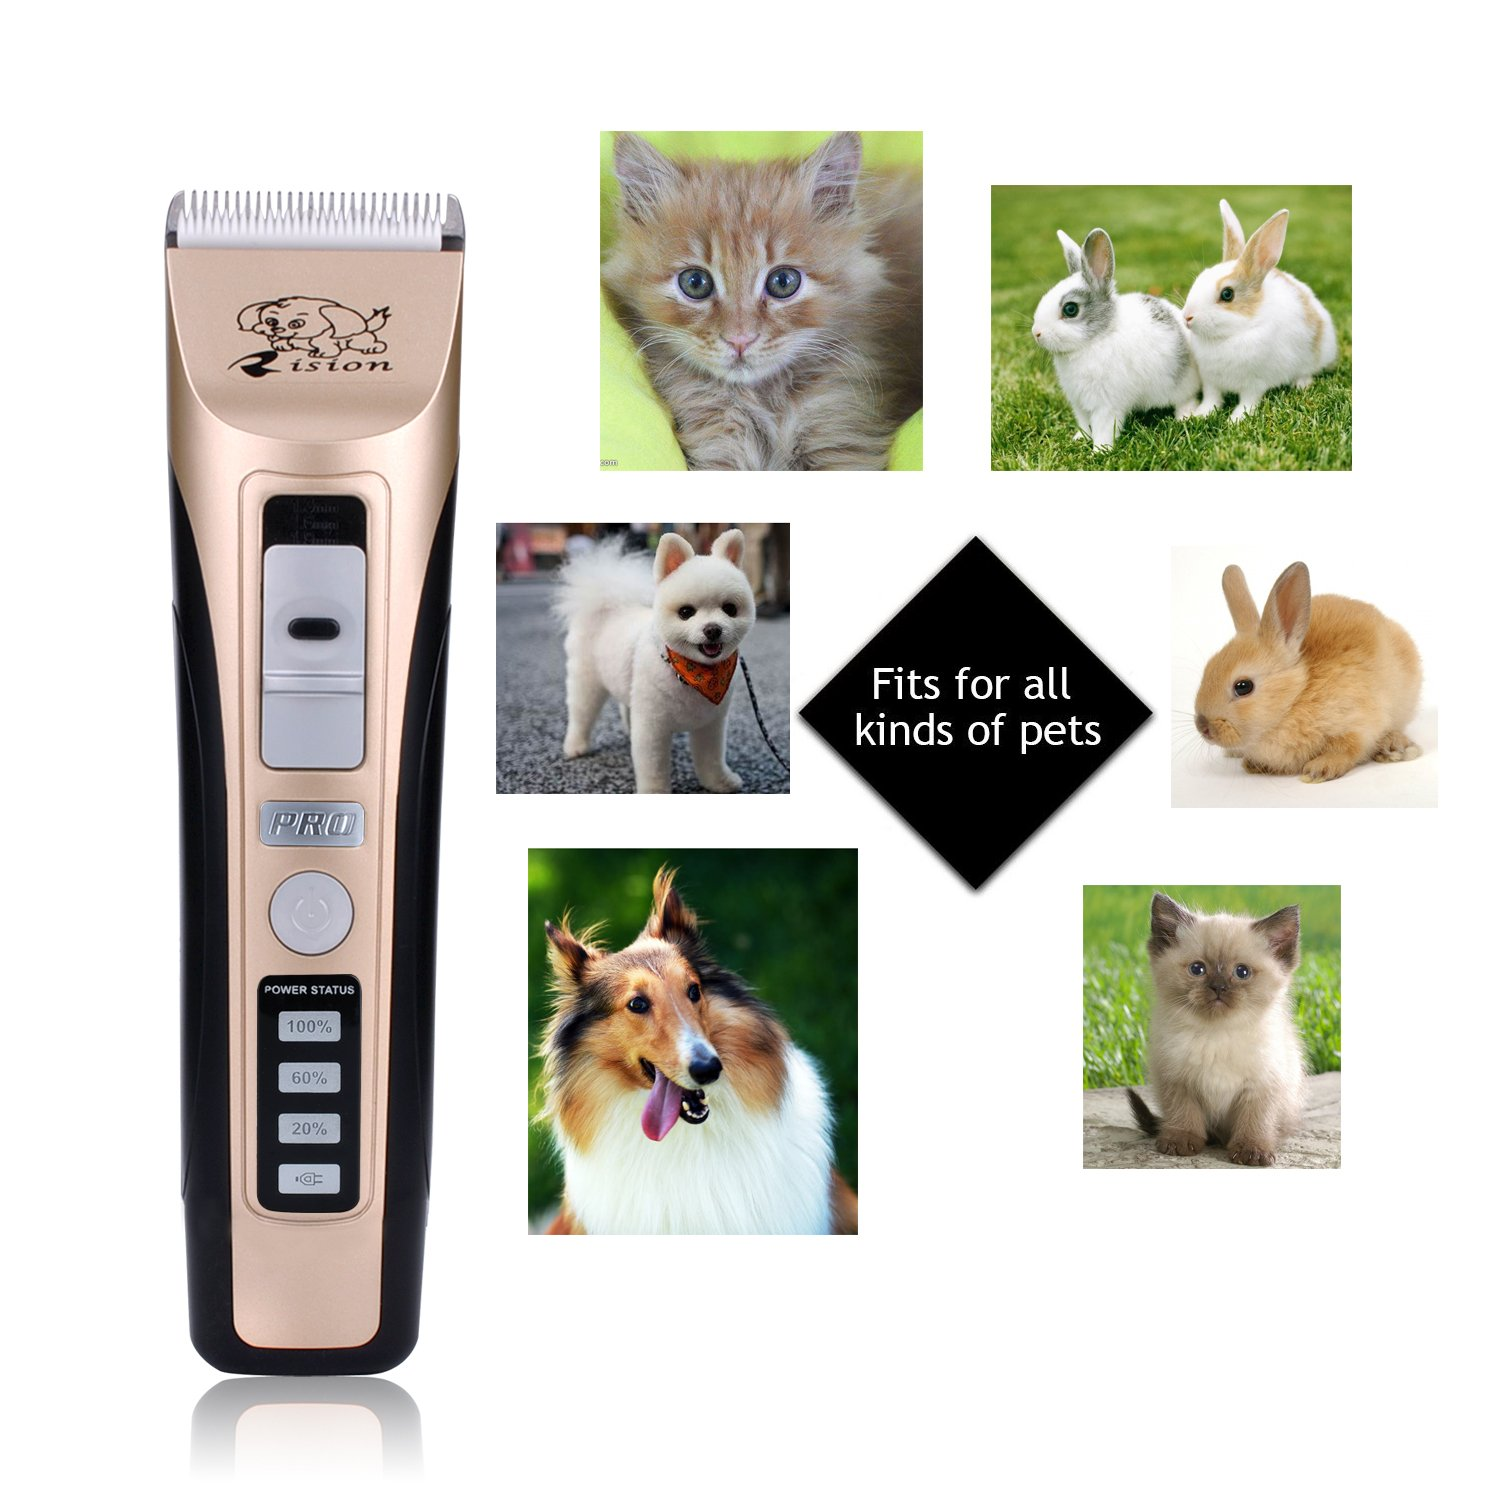 Pet Clippers, Rision Low Noise Rechargeable Cordless Dog Trimmers Professional Animal Grooming Shavers for Thick Hair Dogs, Cats, Rabbits and Horses by Rision (Image #1)